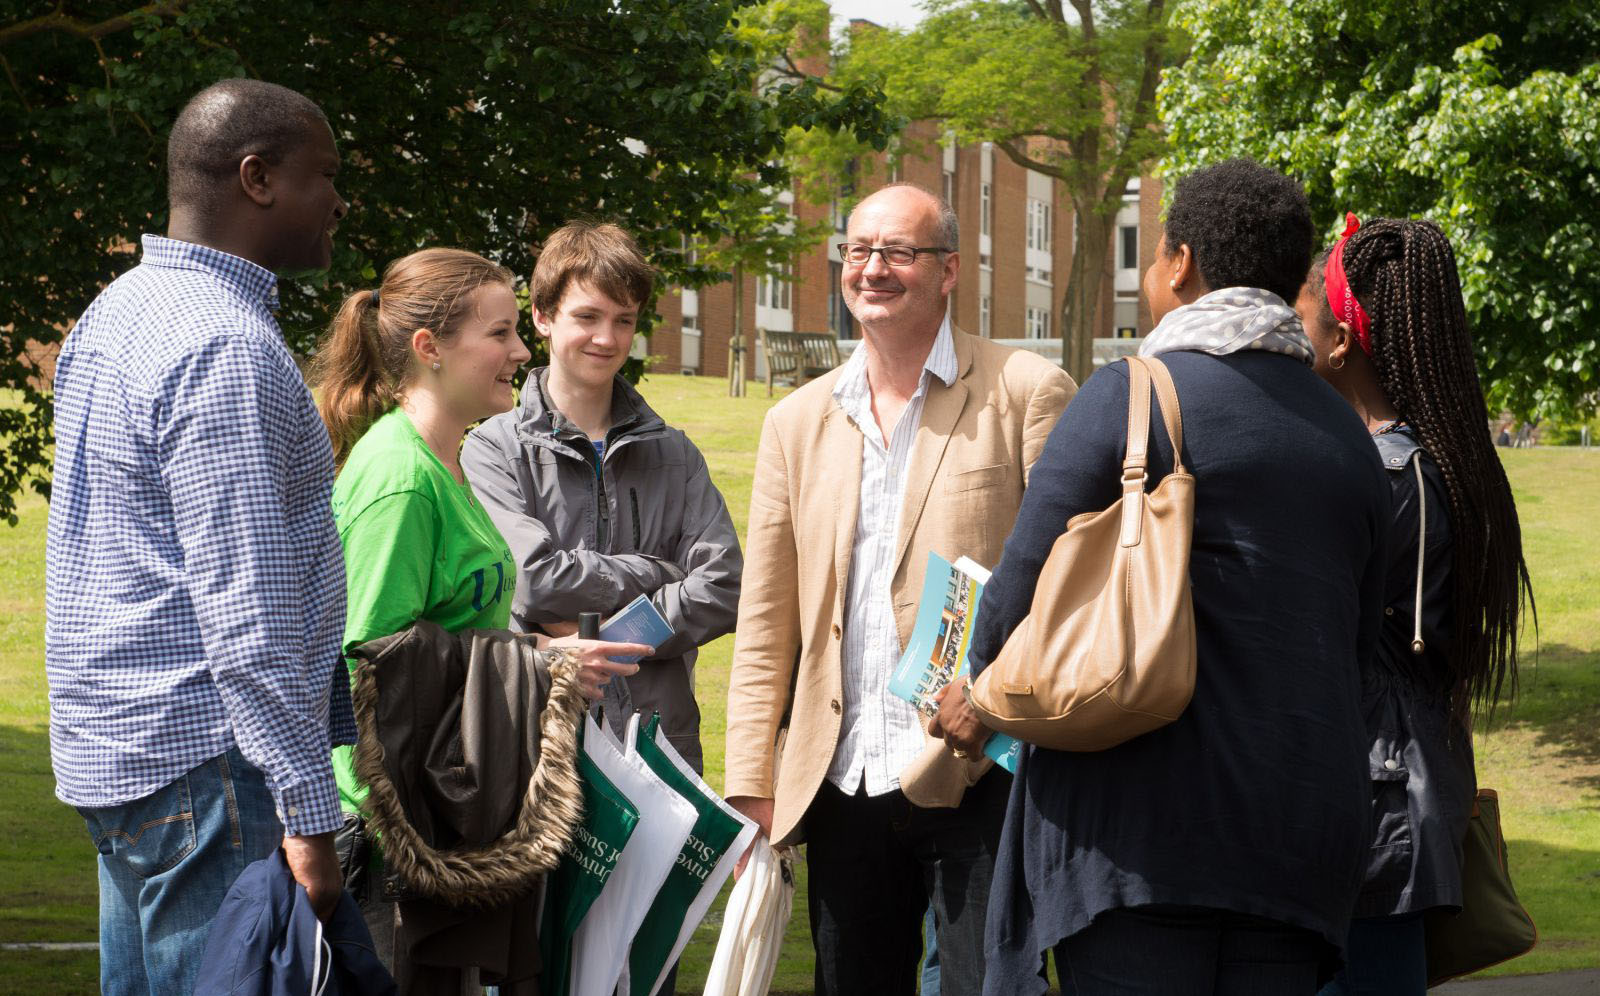 A group of people being shown around Sussex campus by one of our guides